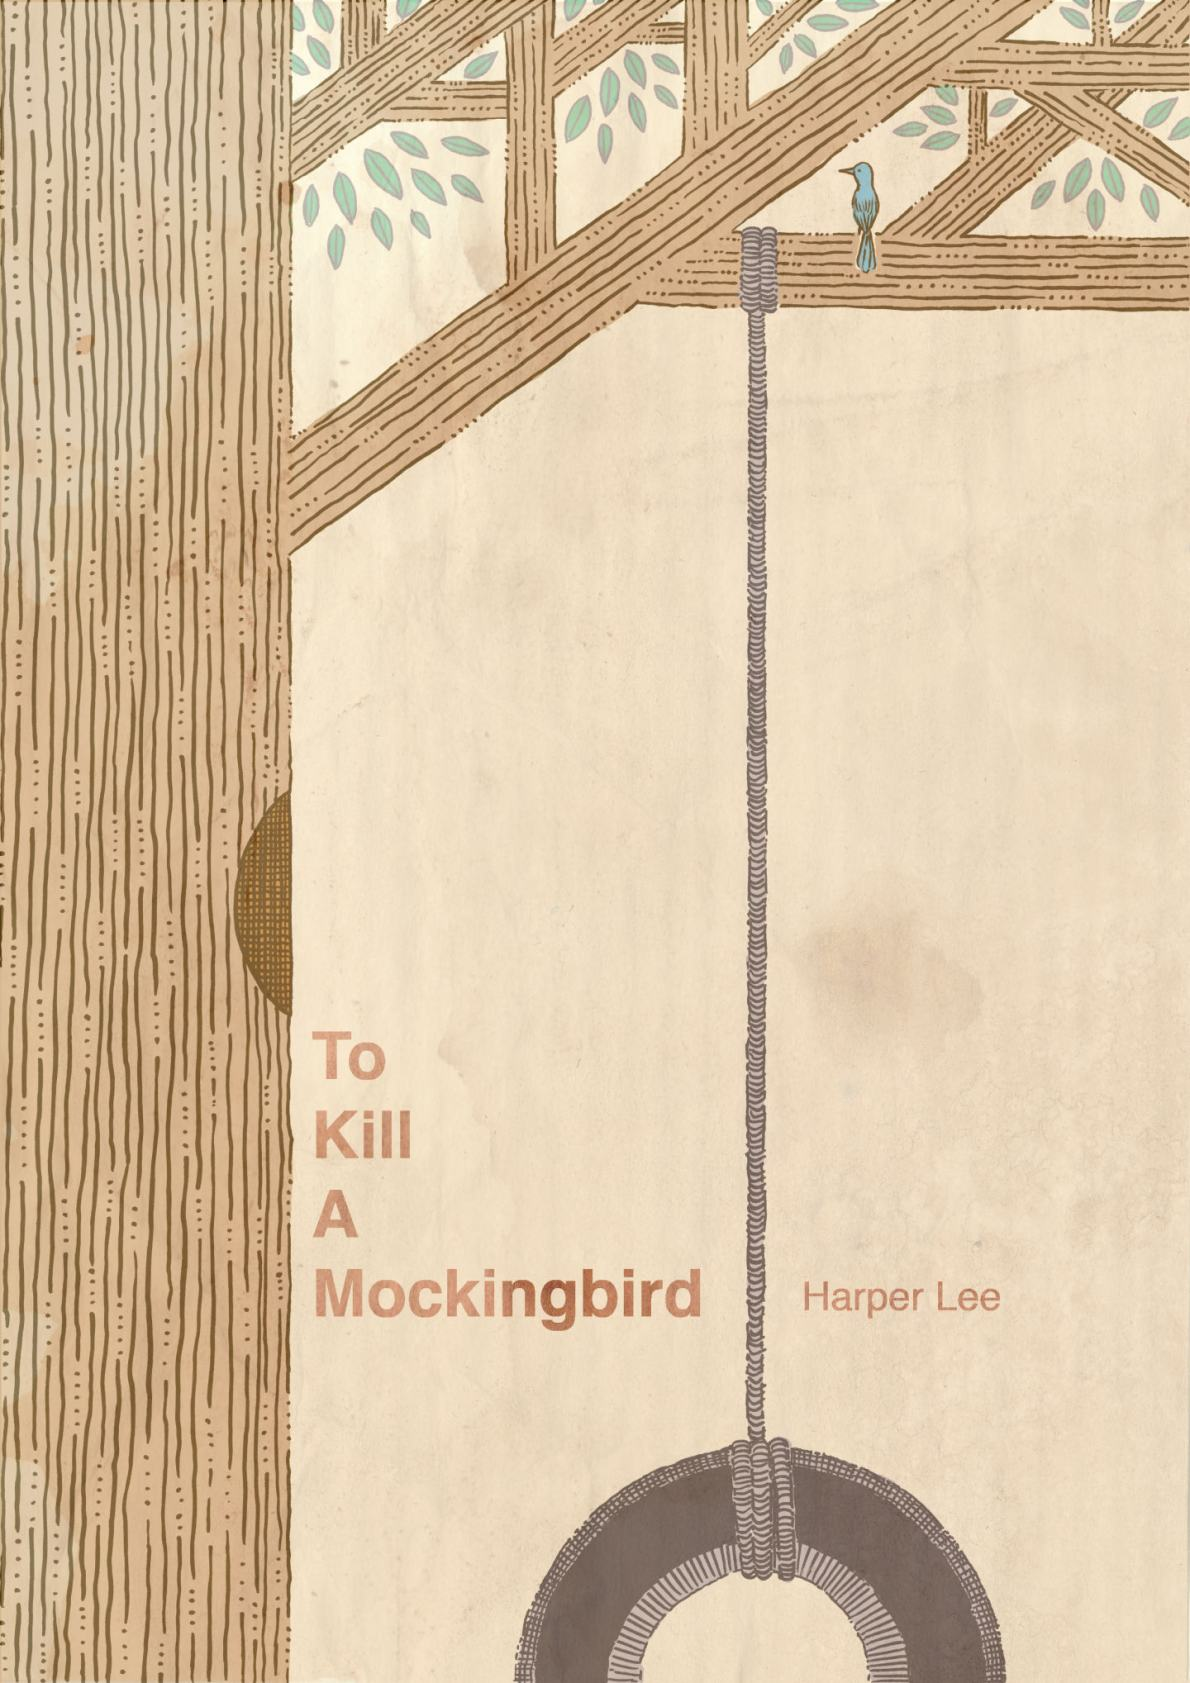 'To Kill a Mockingbird' cover - portfolio piece